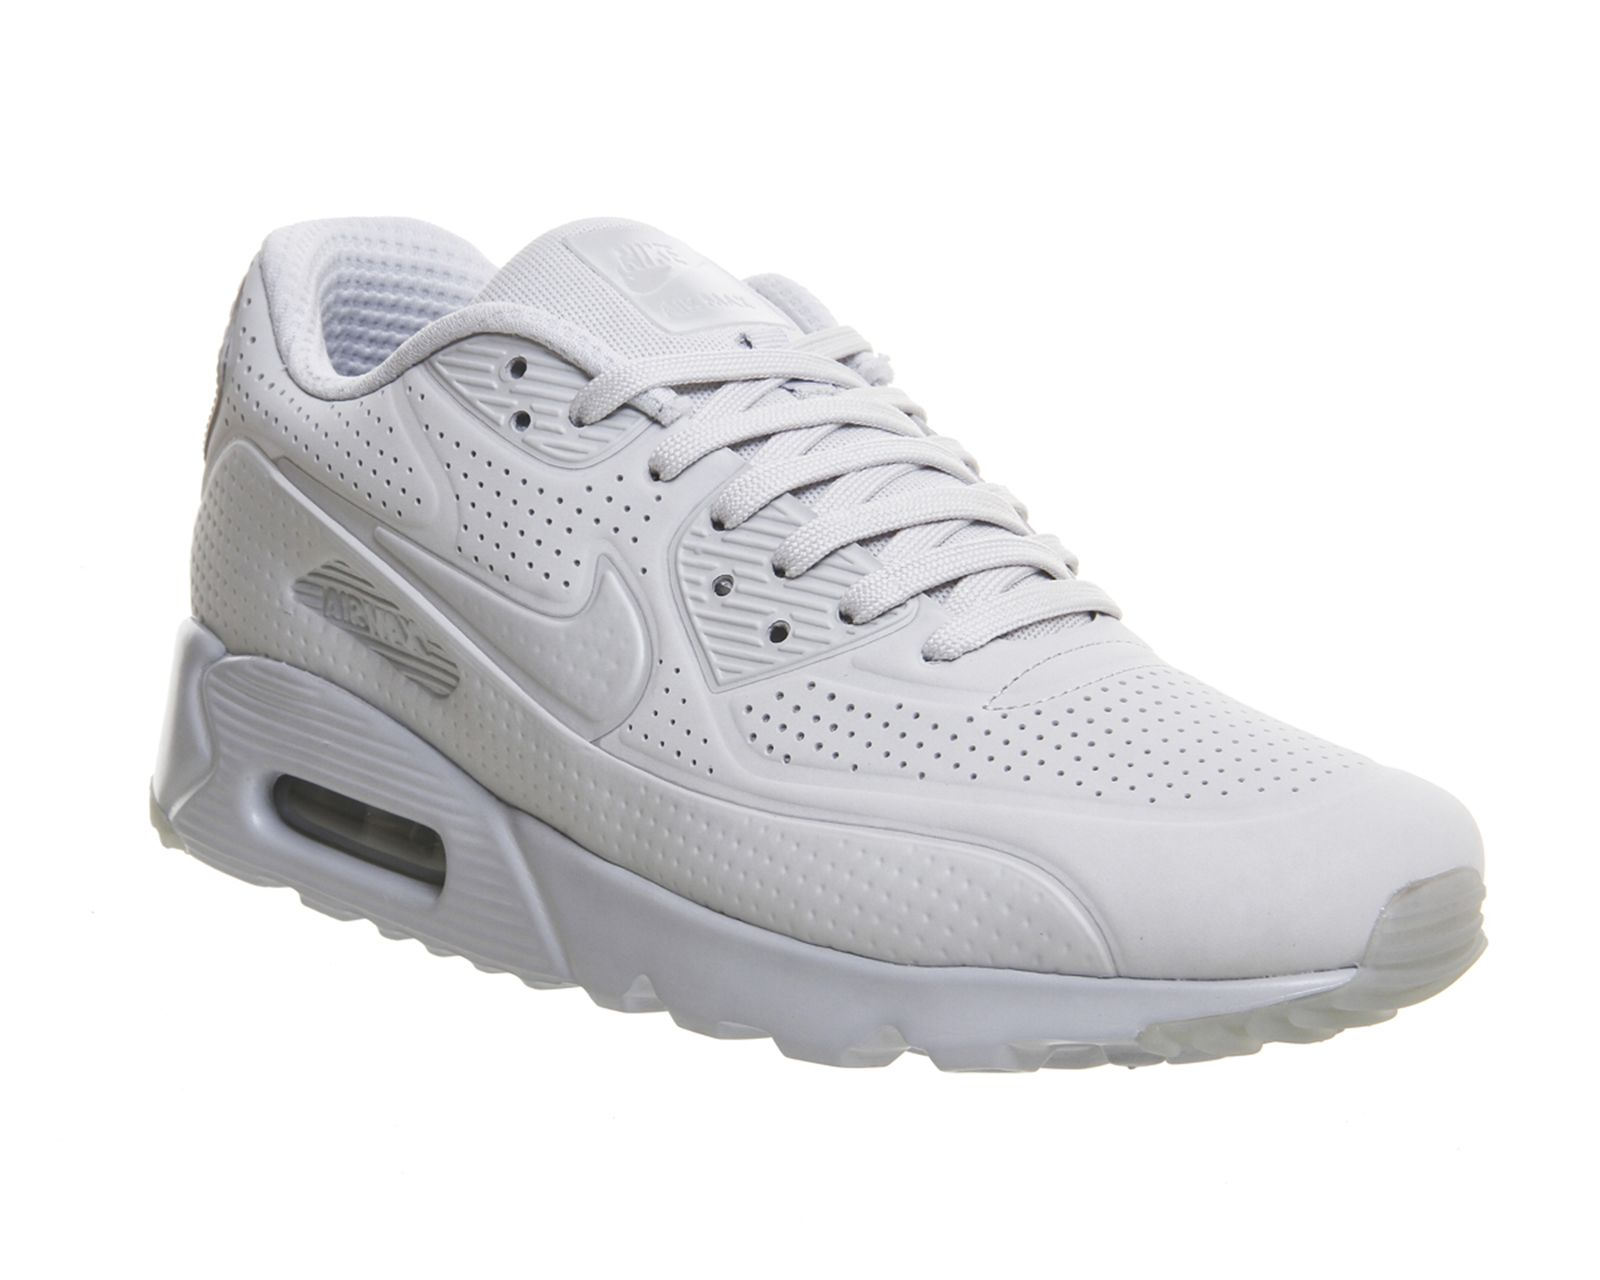 new concept 1715f a7f4f Buy Phantom White M Nike Air Max 90 Ultra Moire from OFFICE.co.uk.